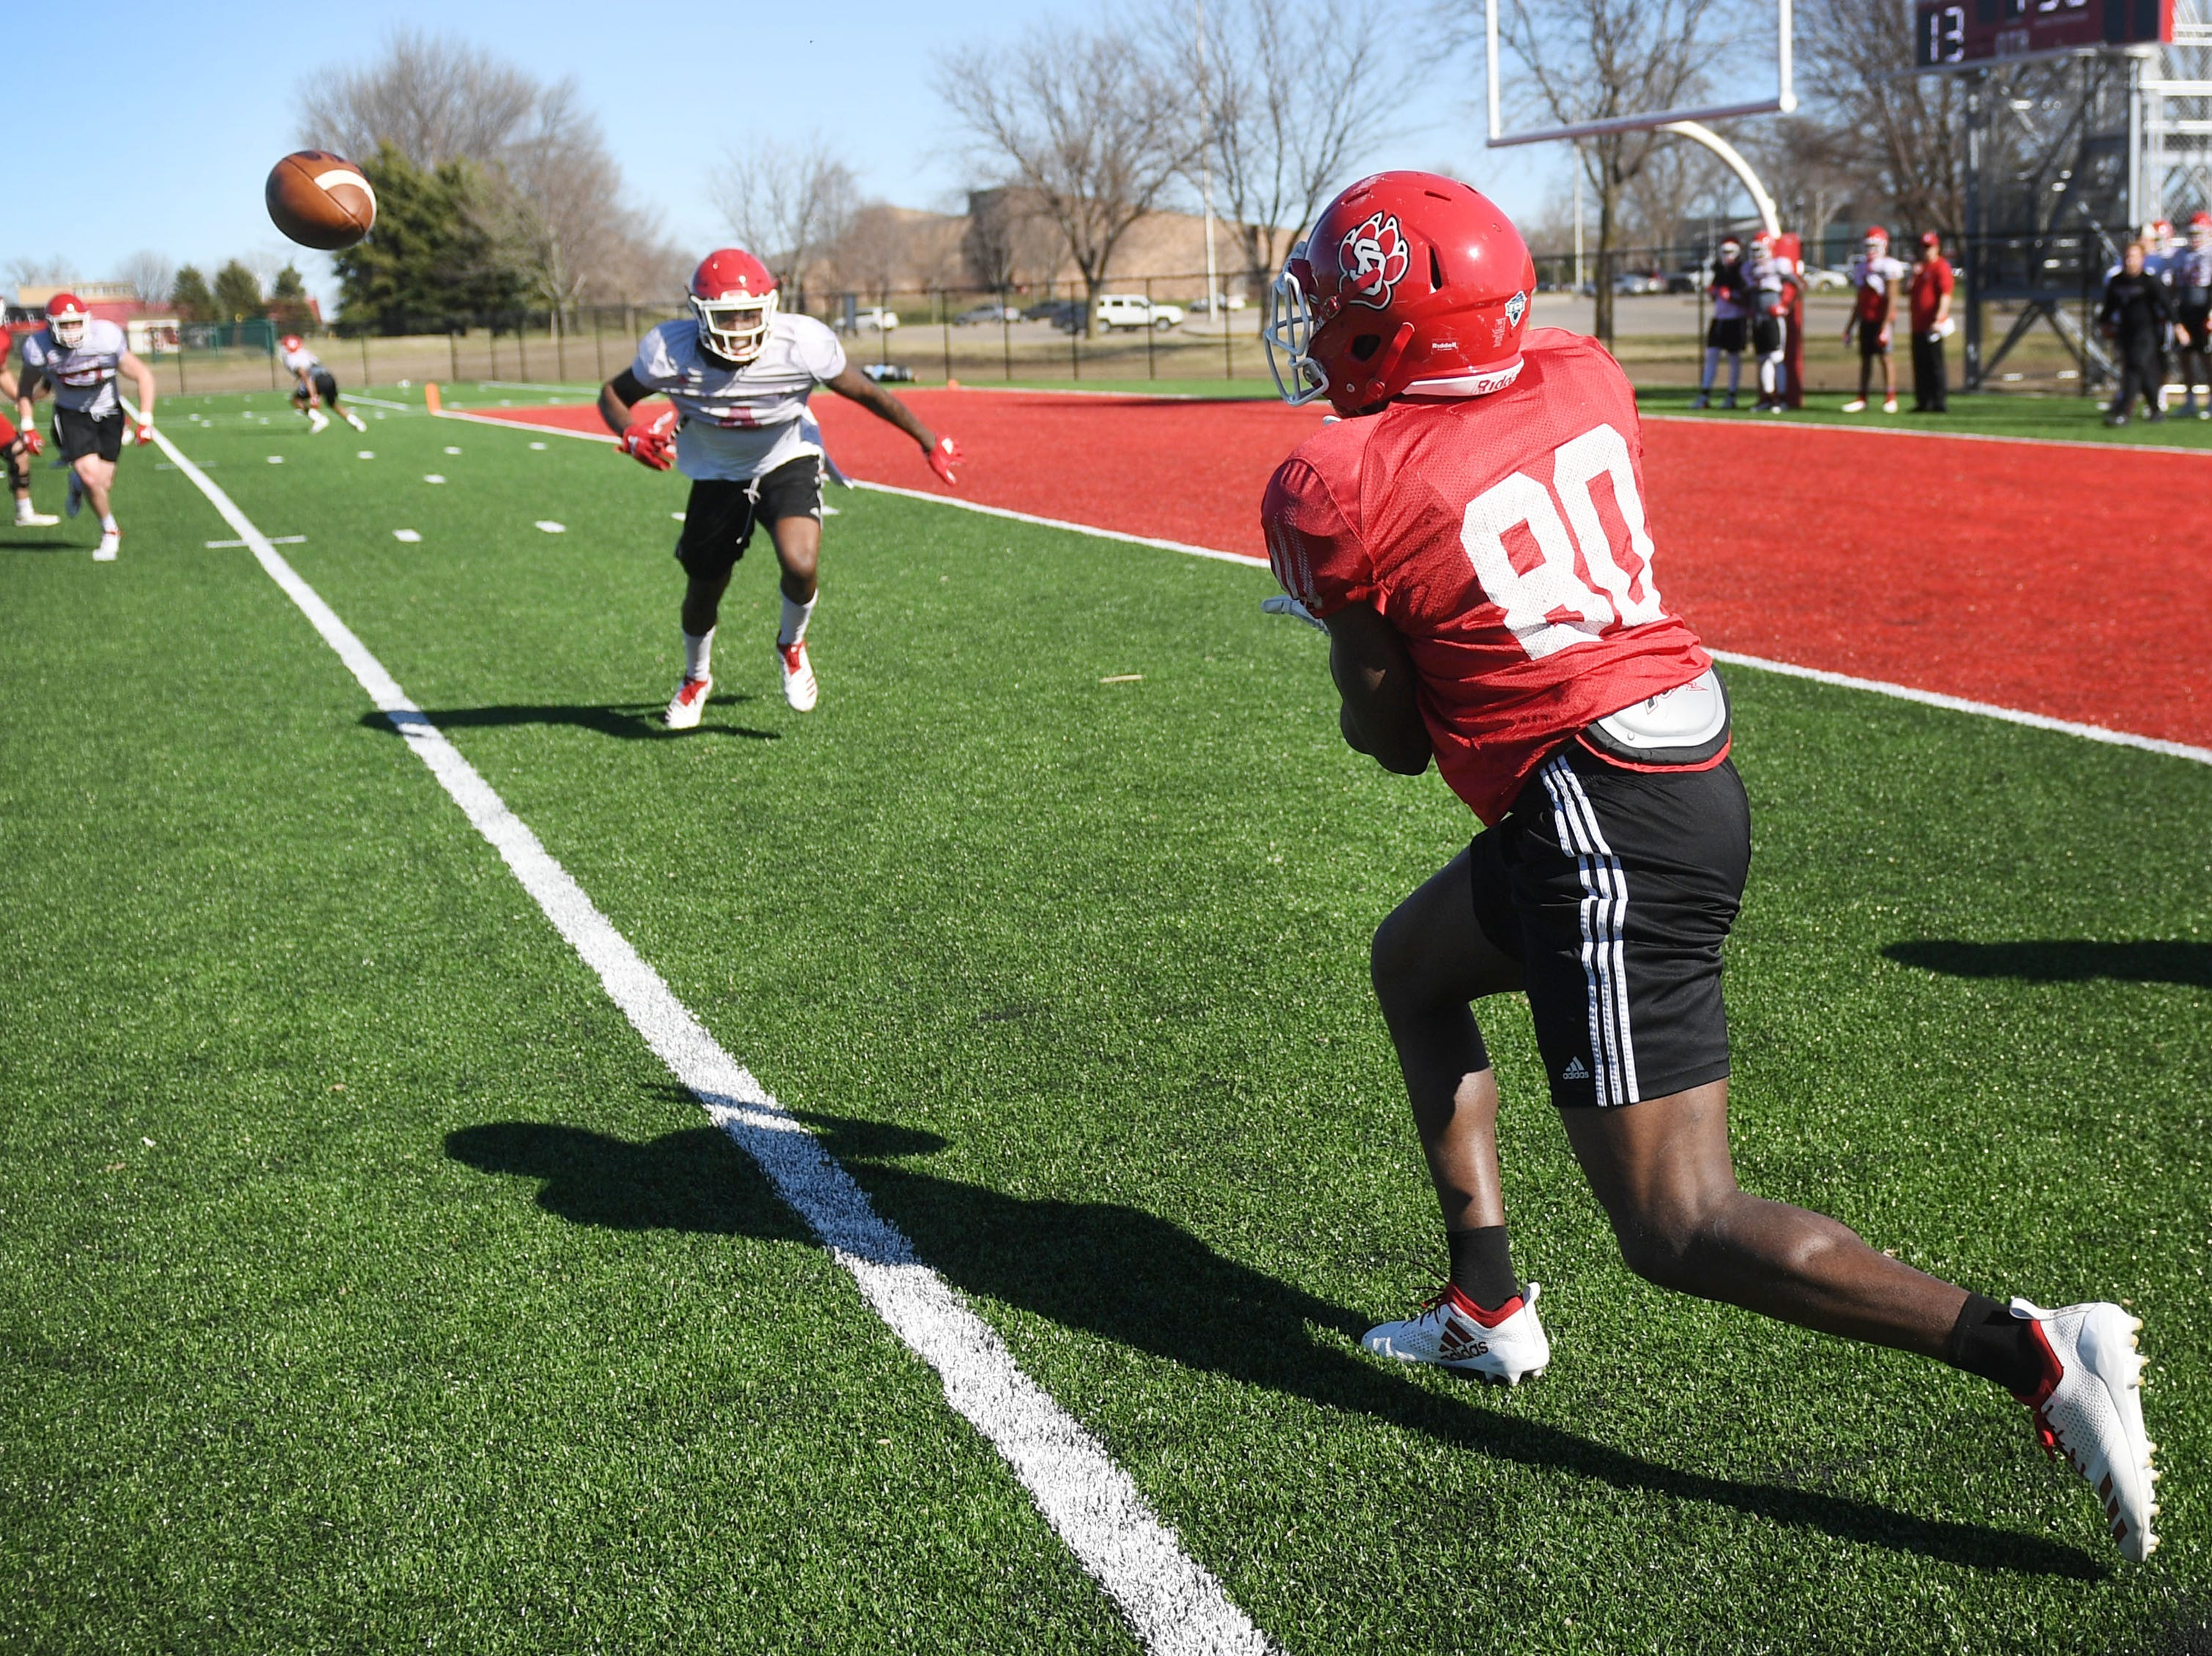 USD's Wes Eliodor (80) runs a play during spring football camp Monday, April, 8, on the outdoor practice field at the university in Vermillion.